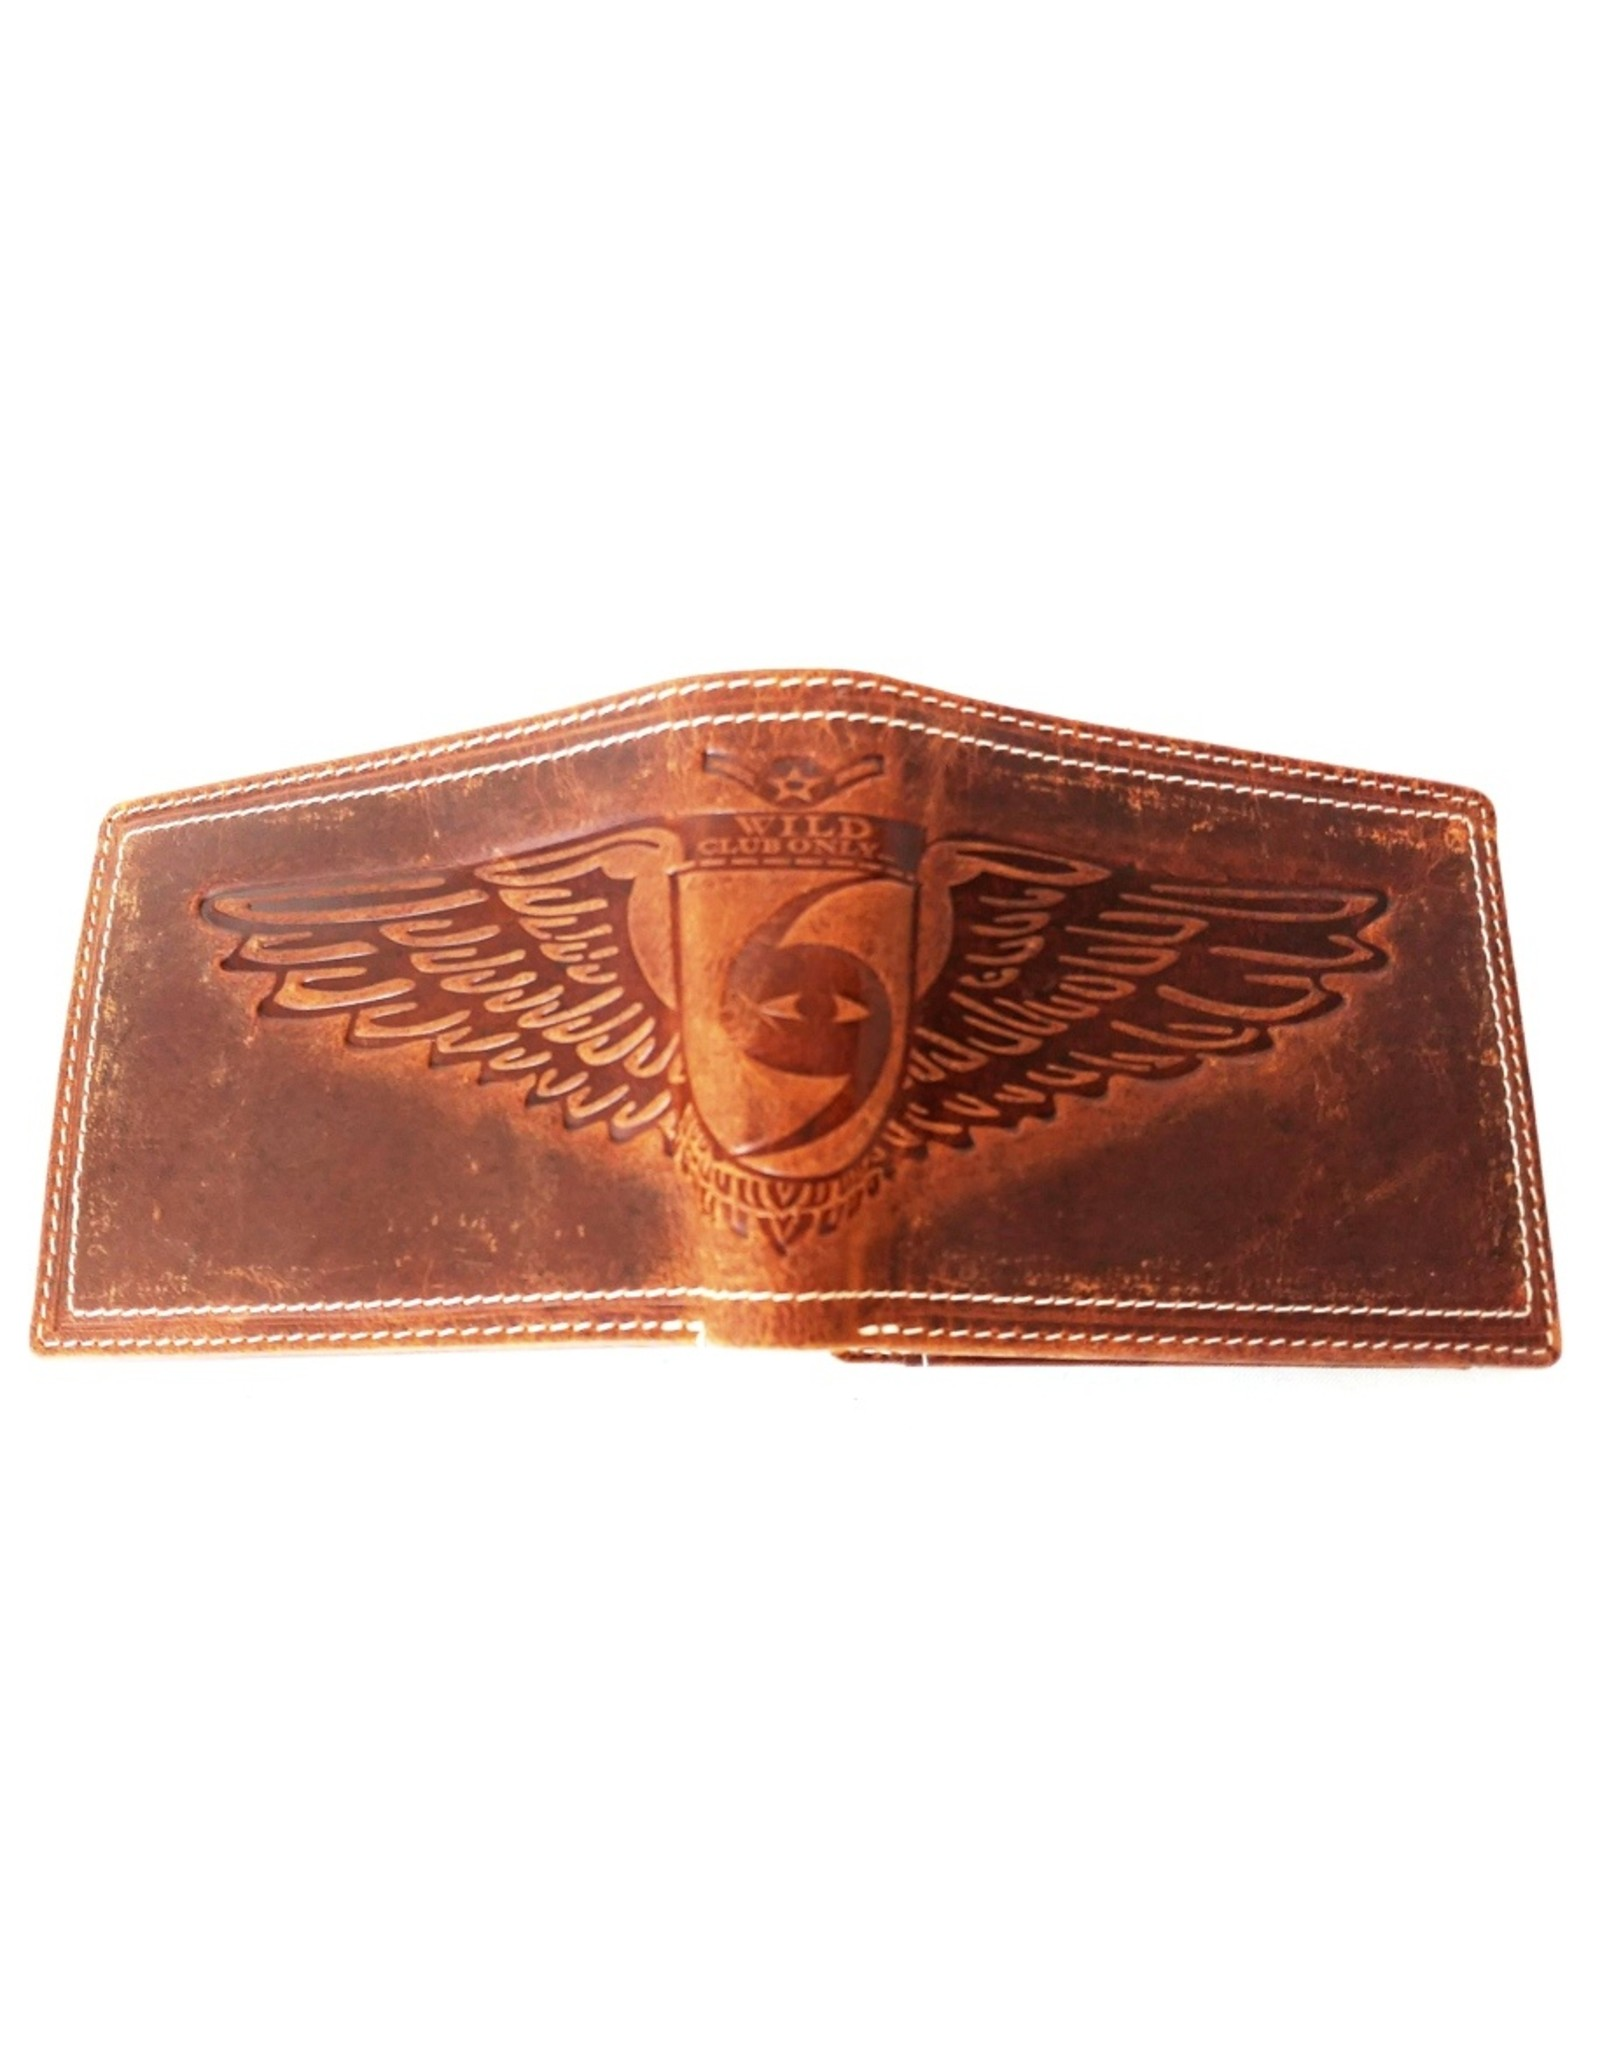 Wild Club Only Leather Wallets - Leather wallet with embossed Eagle Wings